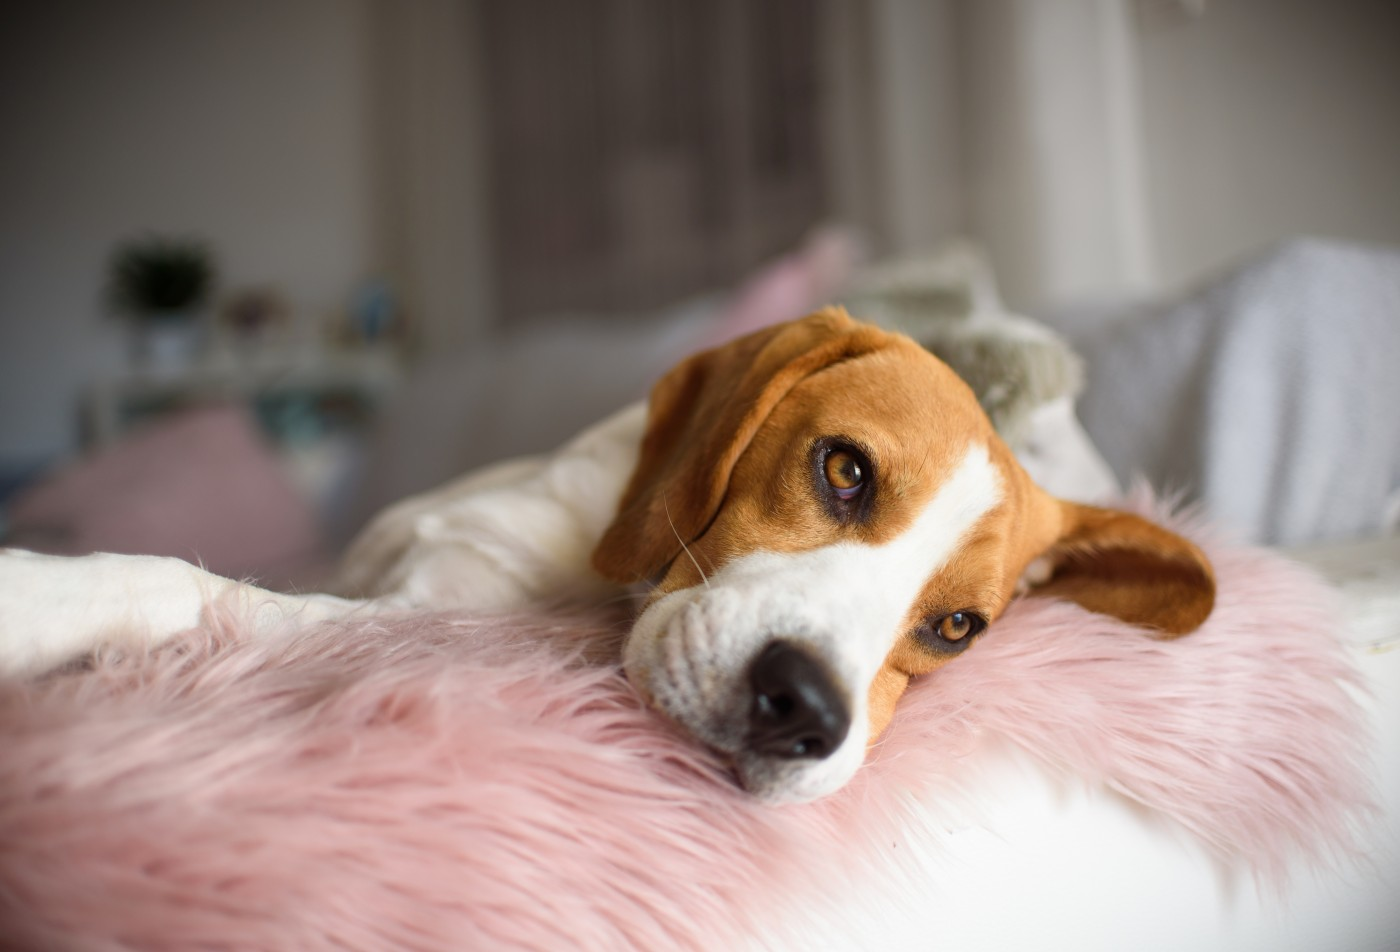 beagle dog lying on couch sofa in living room